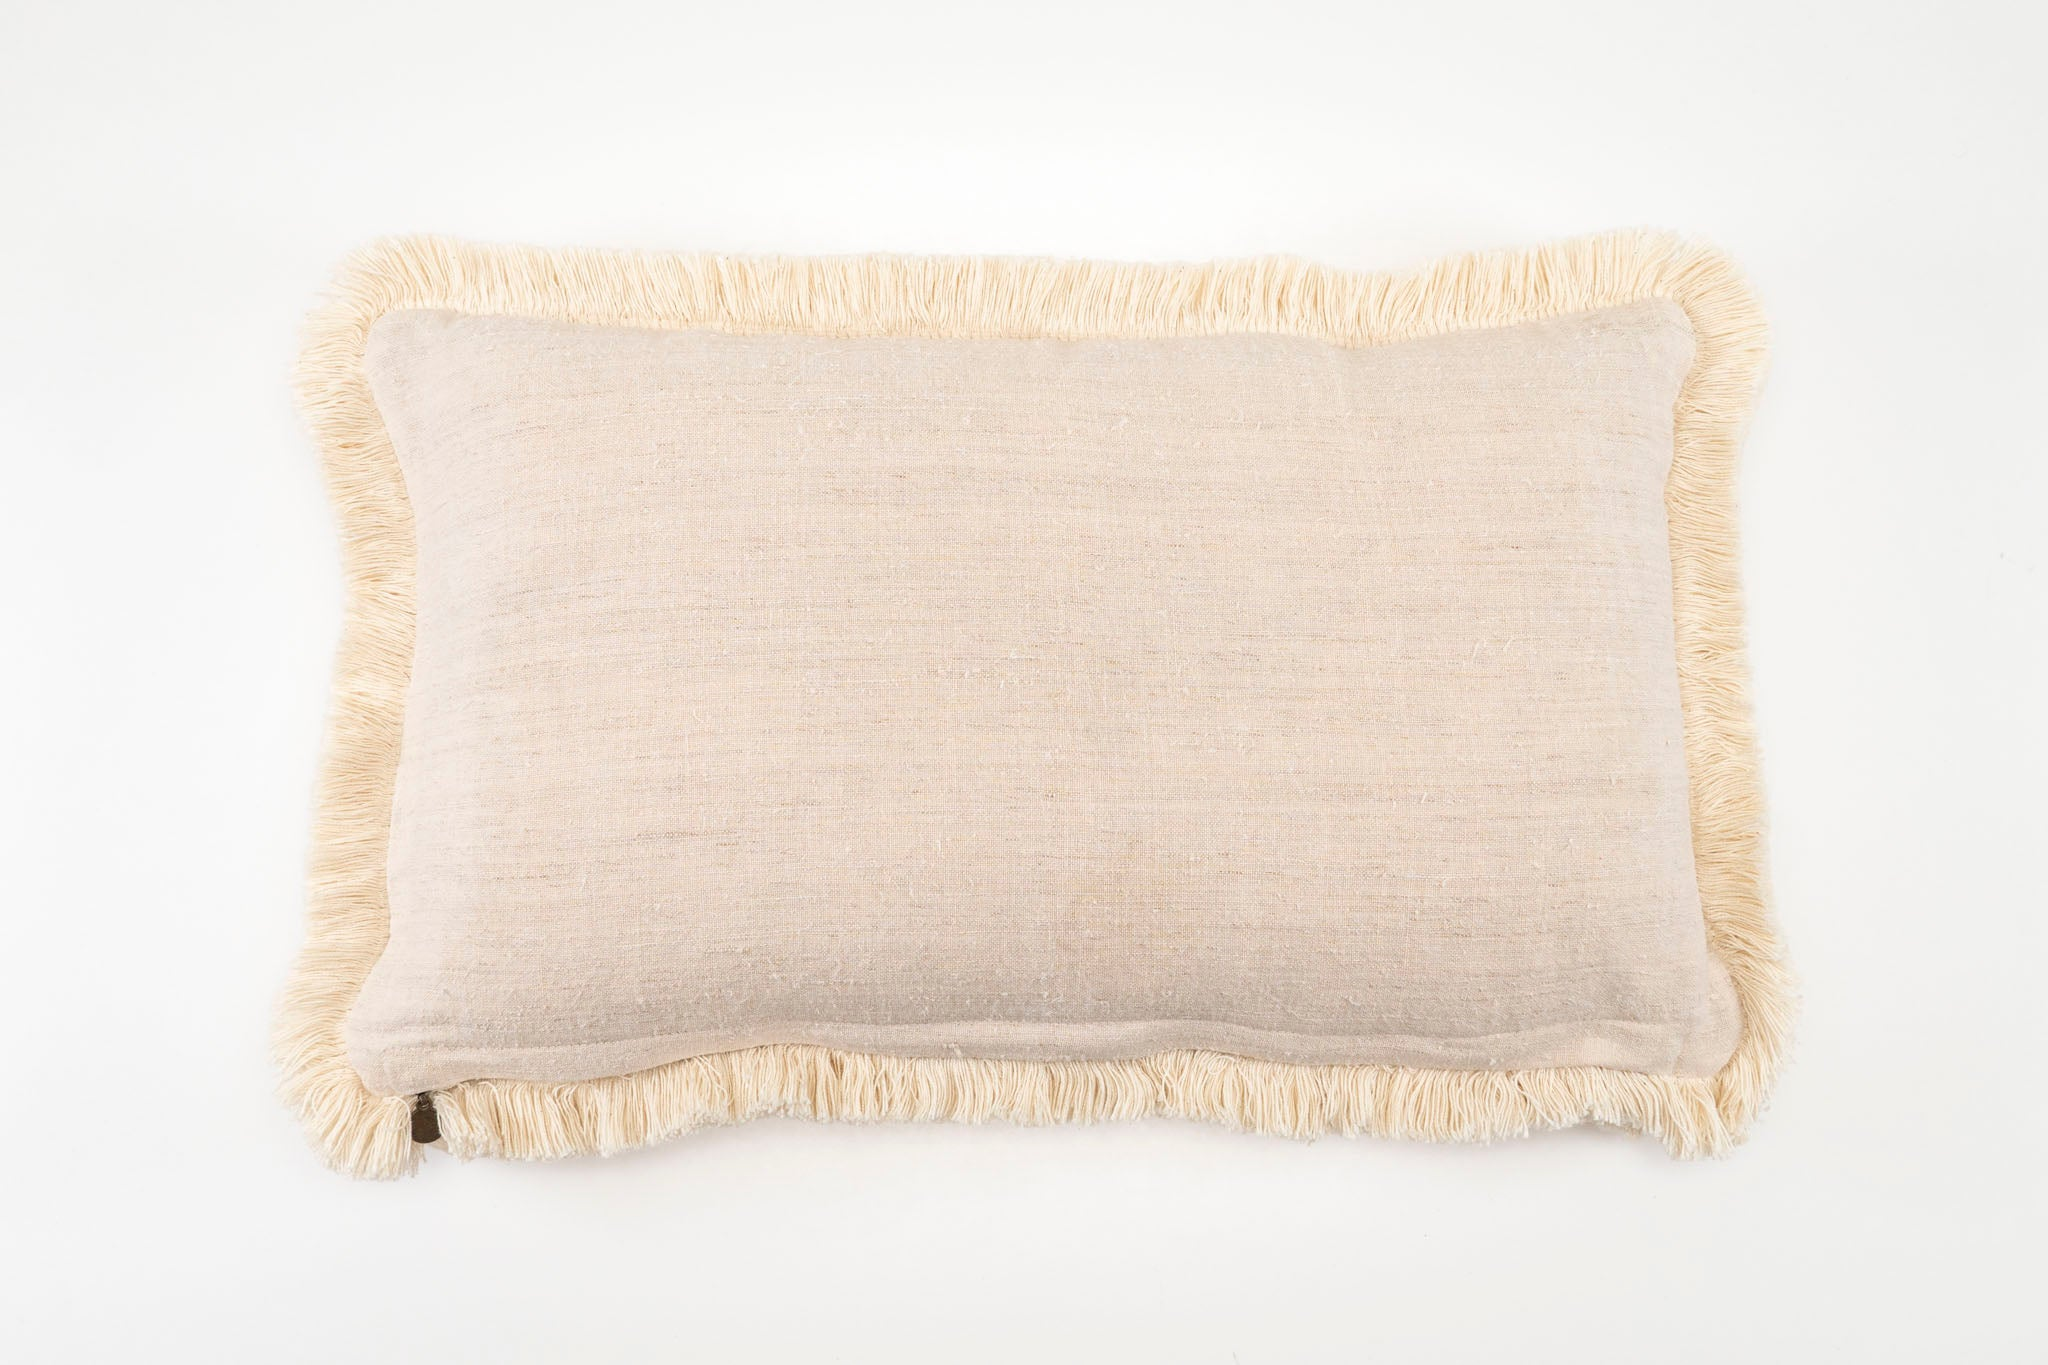 Pillow: Handwoven antique Hungarian hemp - P040